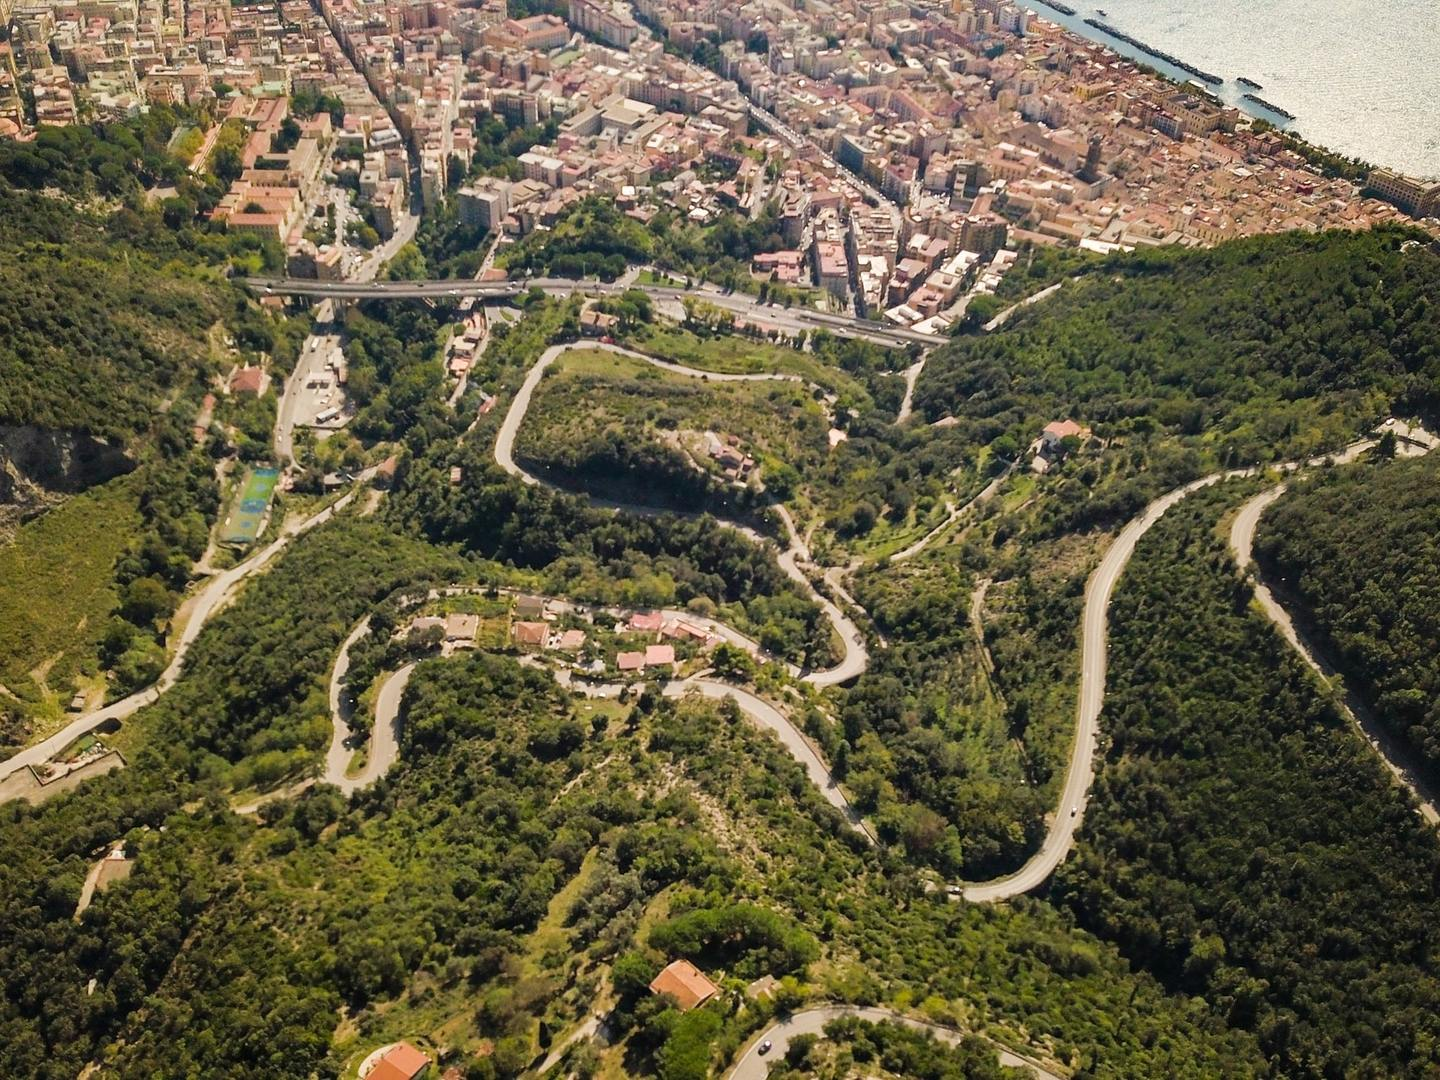 A winding road down to Salerno, Italy